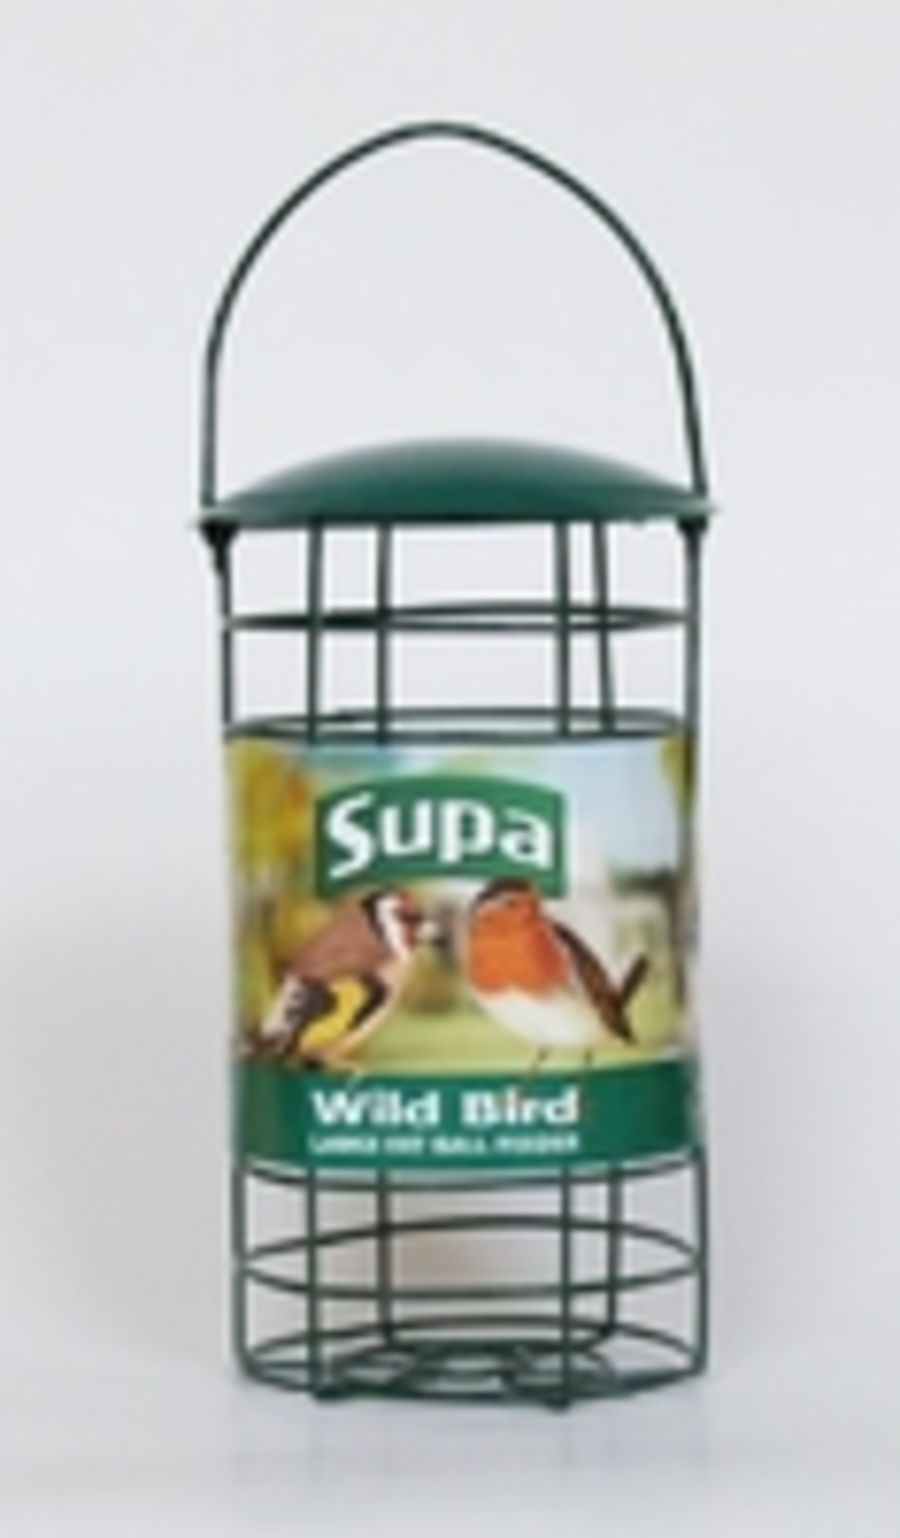 Supa Wild Bird Large Fat Ball Feeder